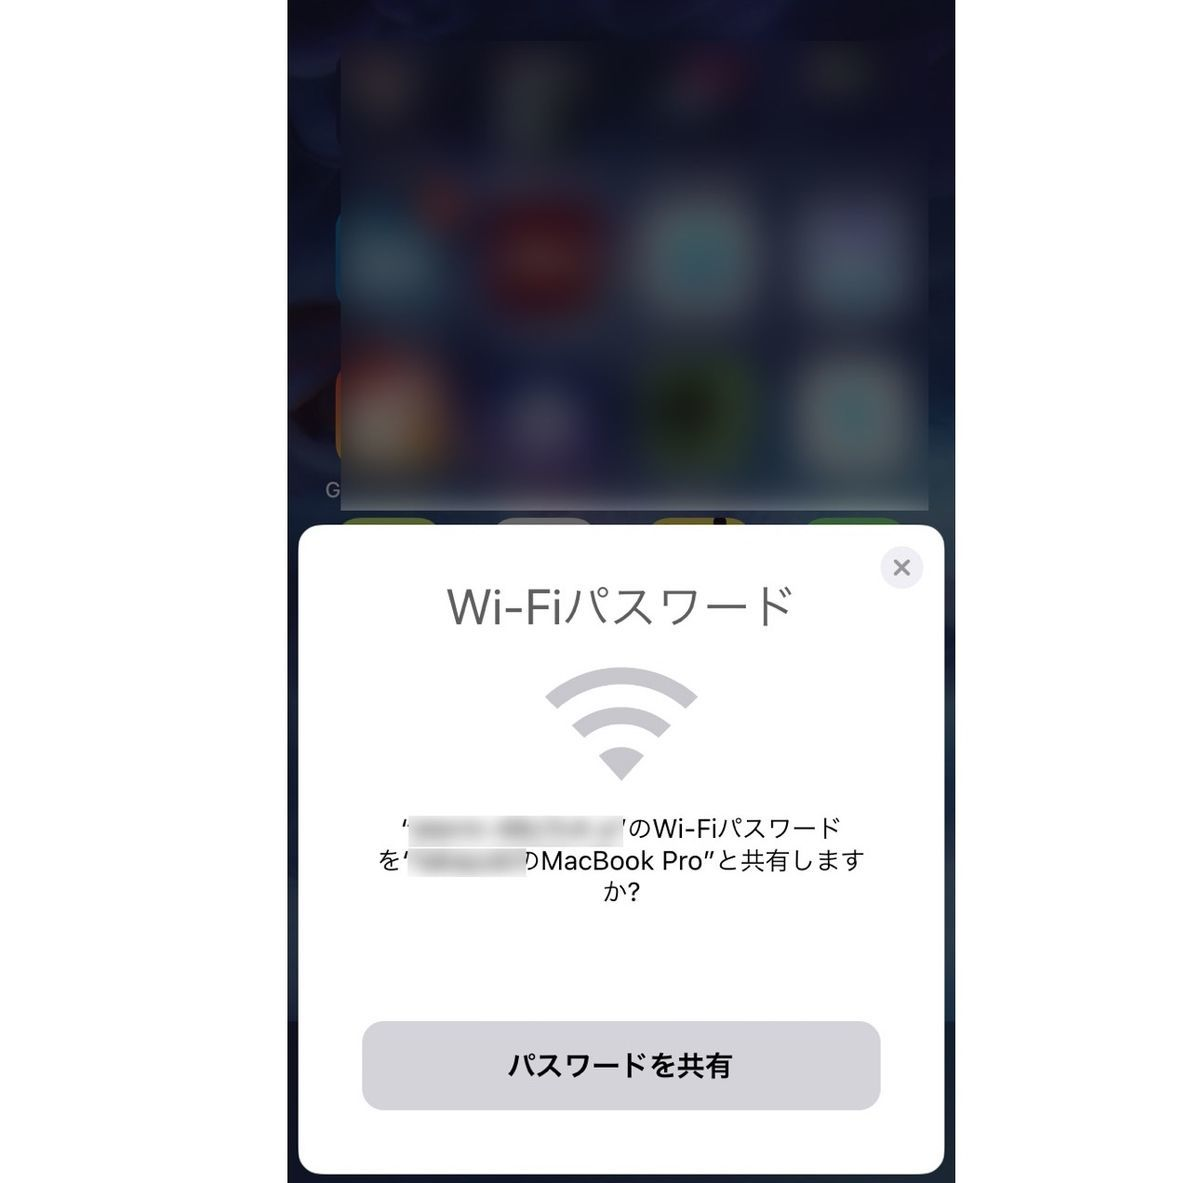 network setting warning info on iphone